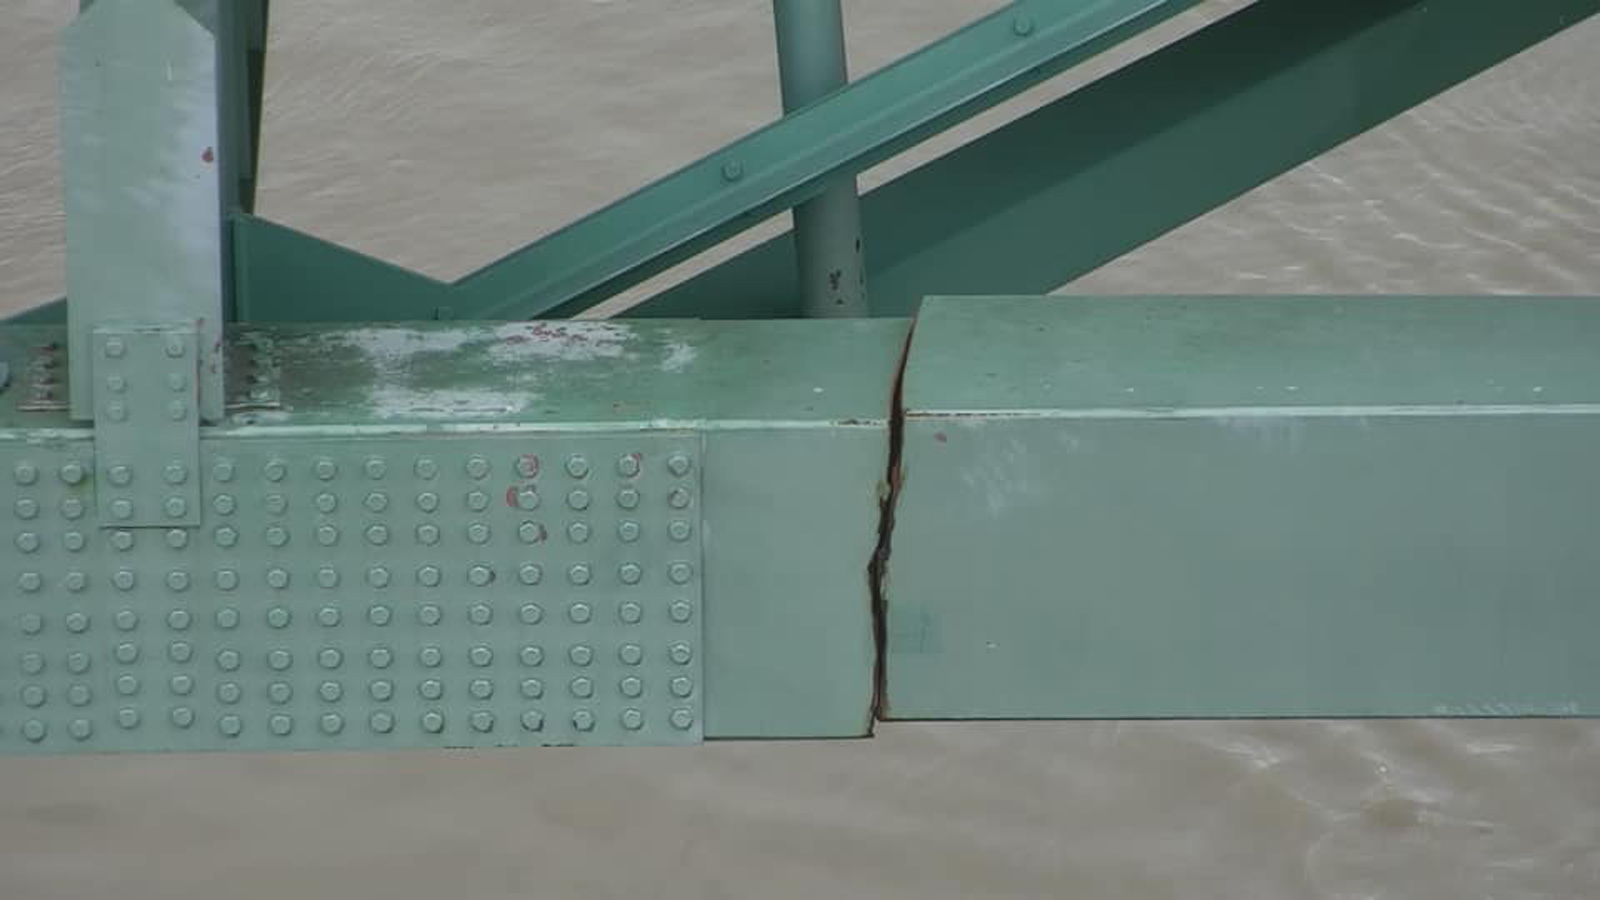 The employee responsible for inspecting the cracked Memphis bridge has been fired